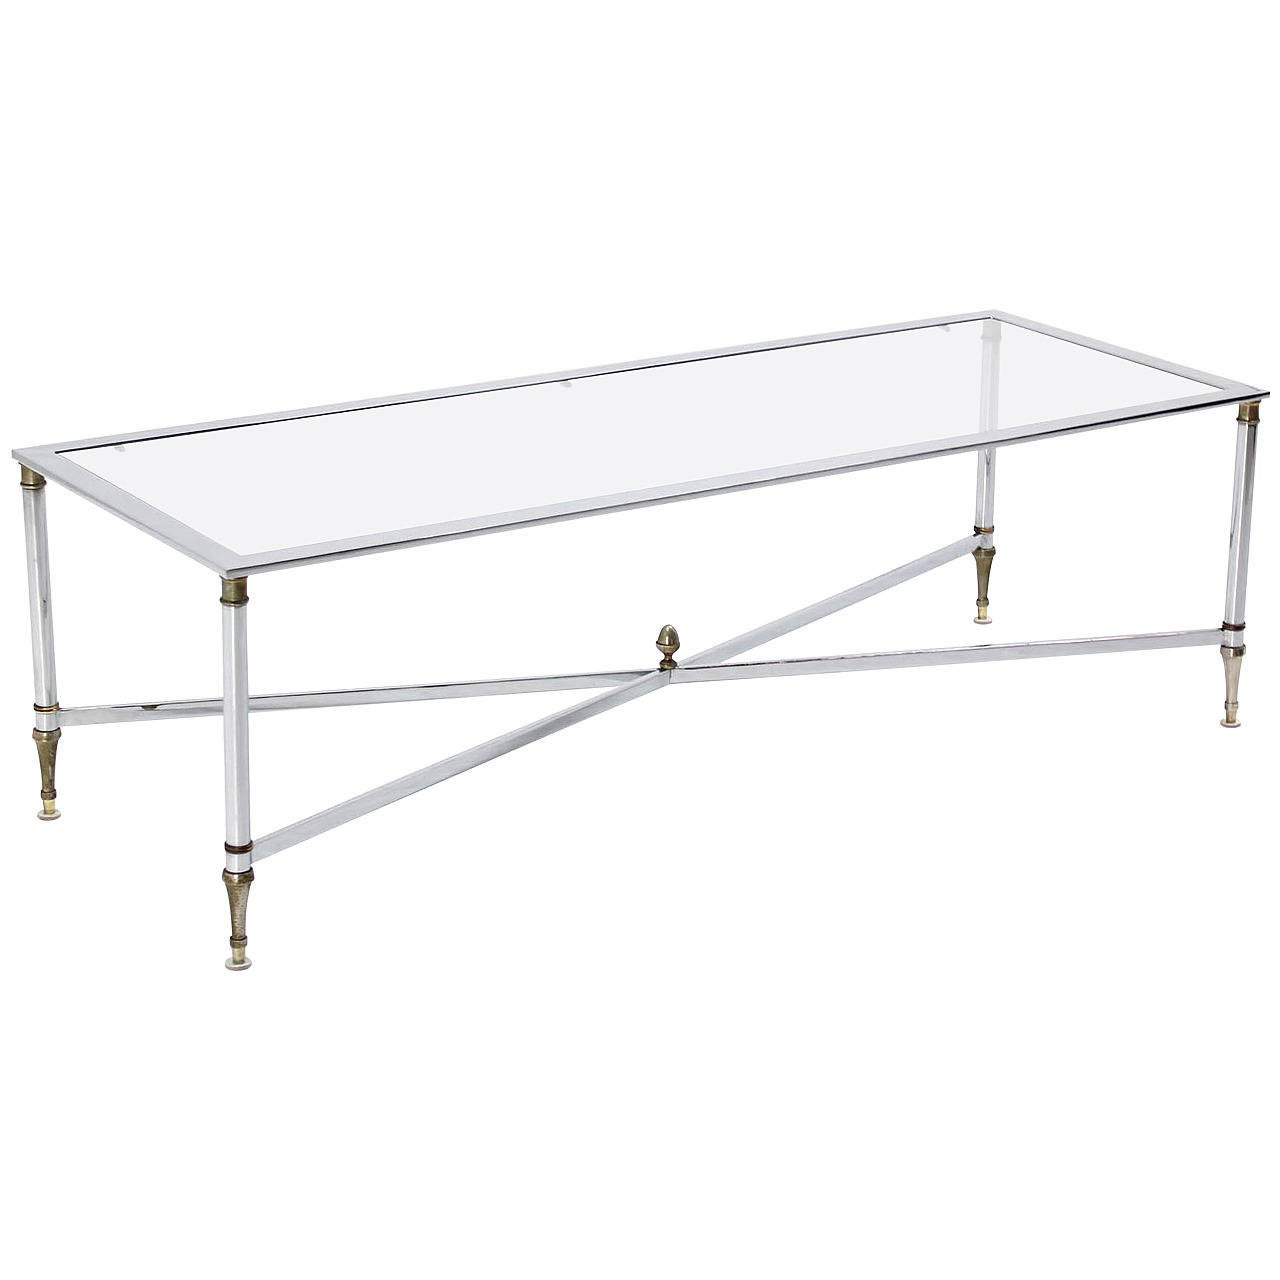 Chrome brass x base glass top long rectangle coffee table for sale at 1stdibs Glass coffee table base